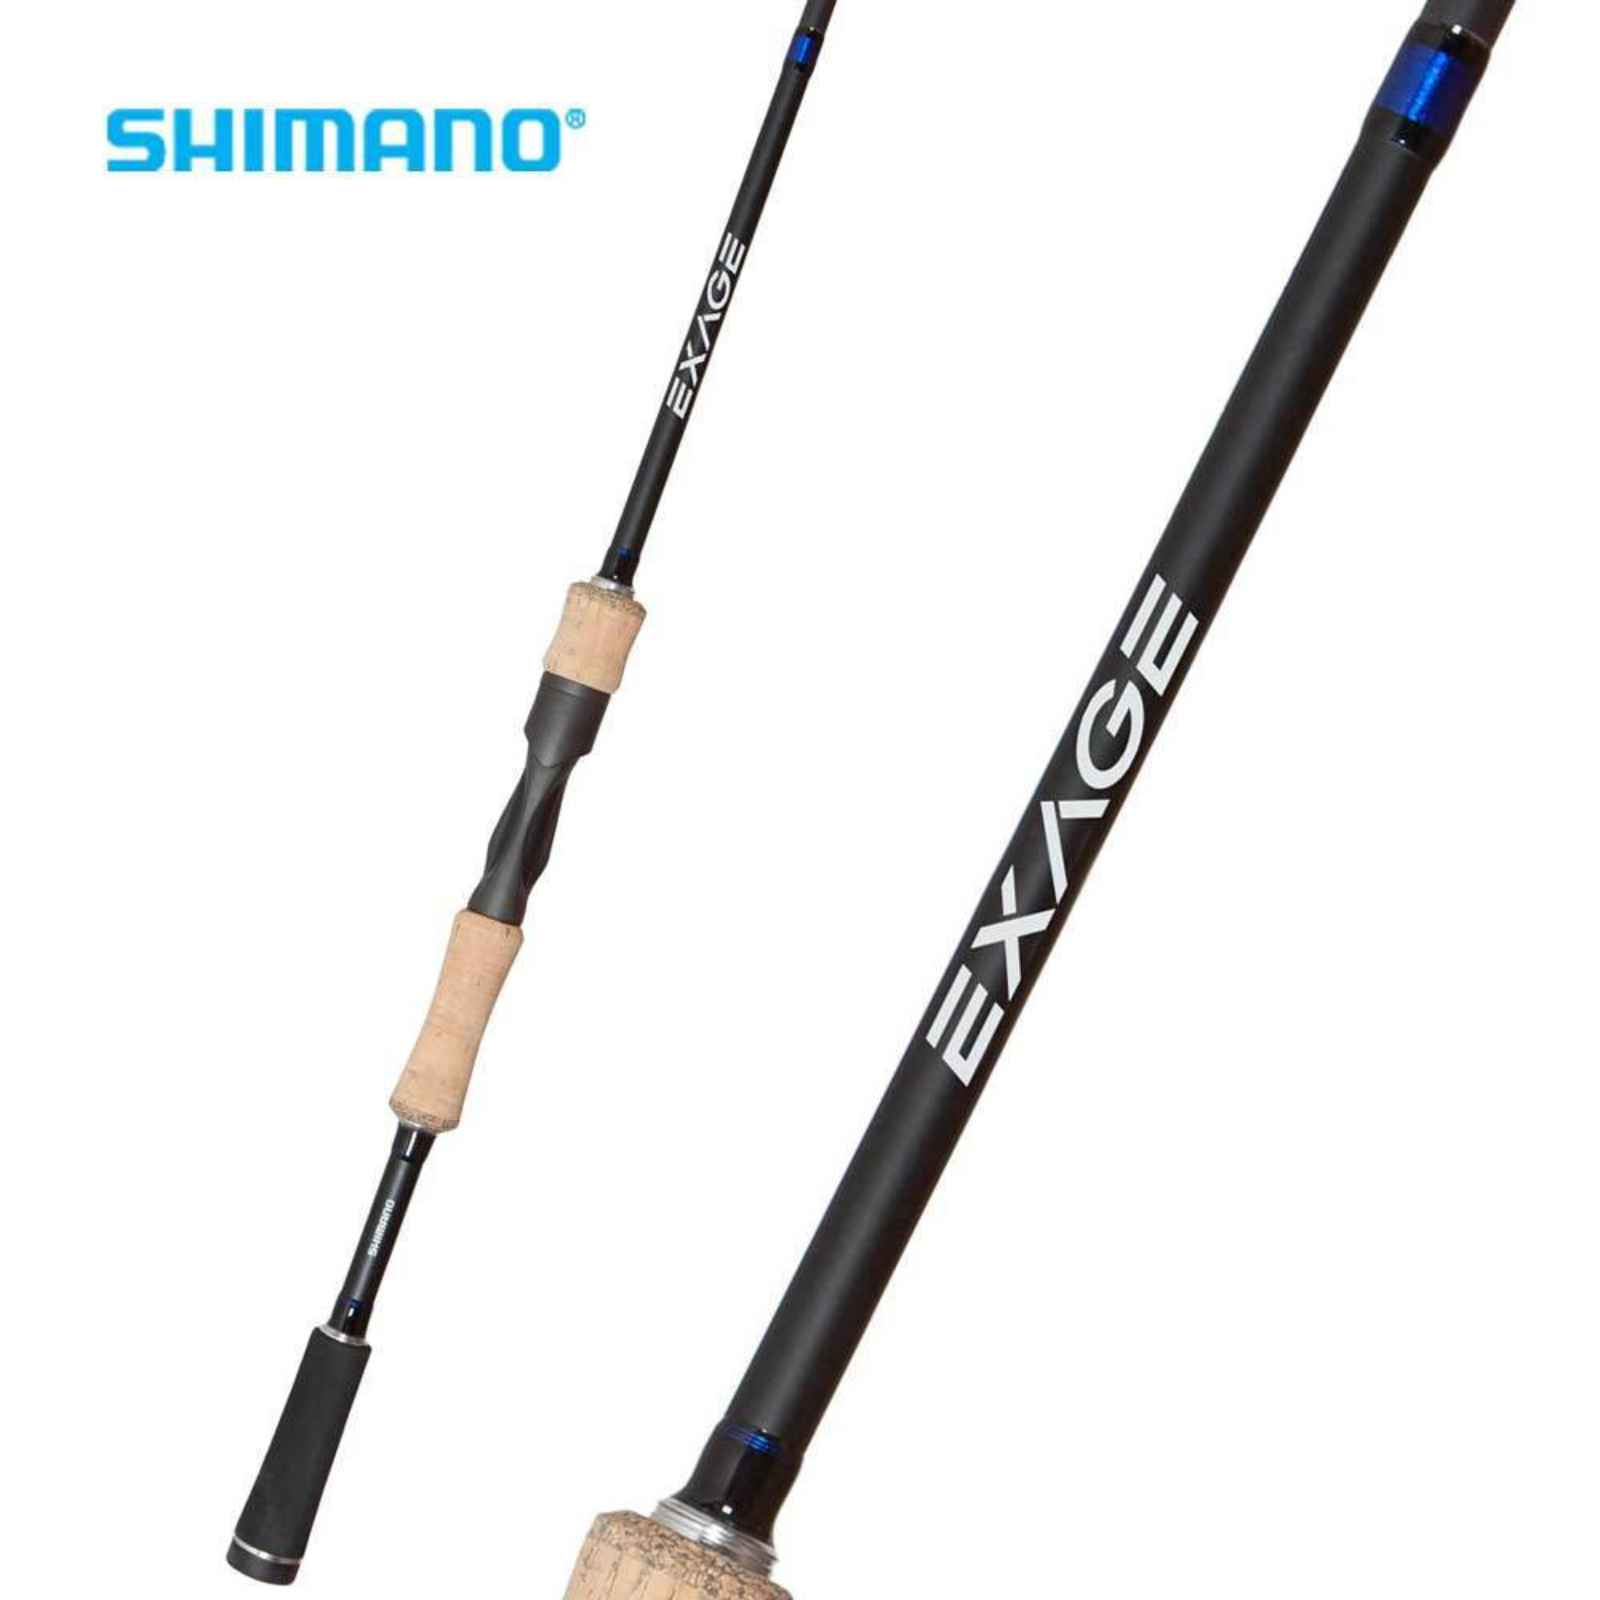 "Shimano Exage Spinning Rod 7'0"" Medium 1pc, XAS70M"